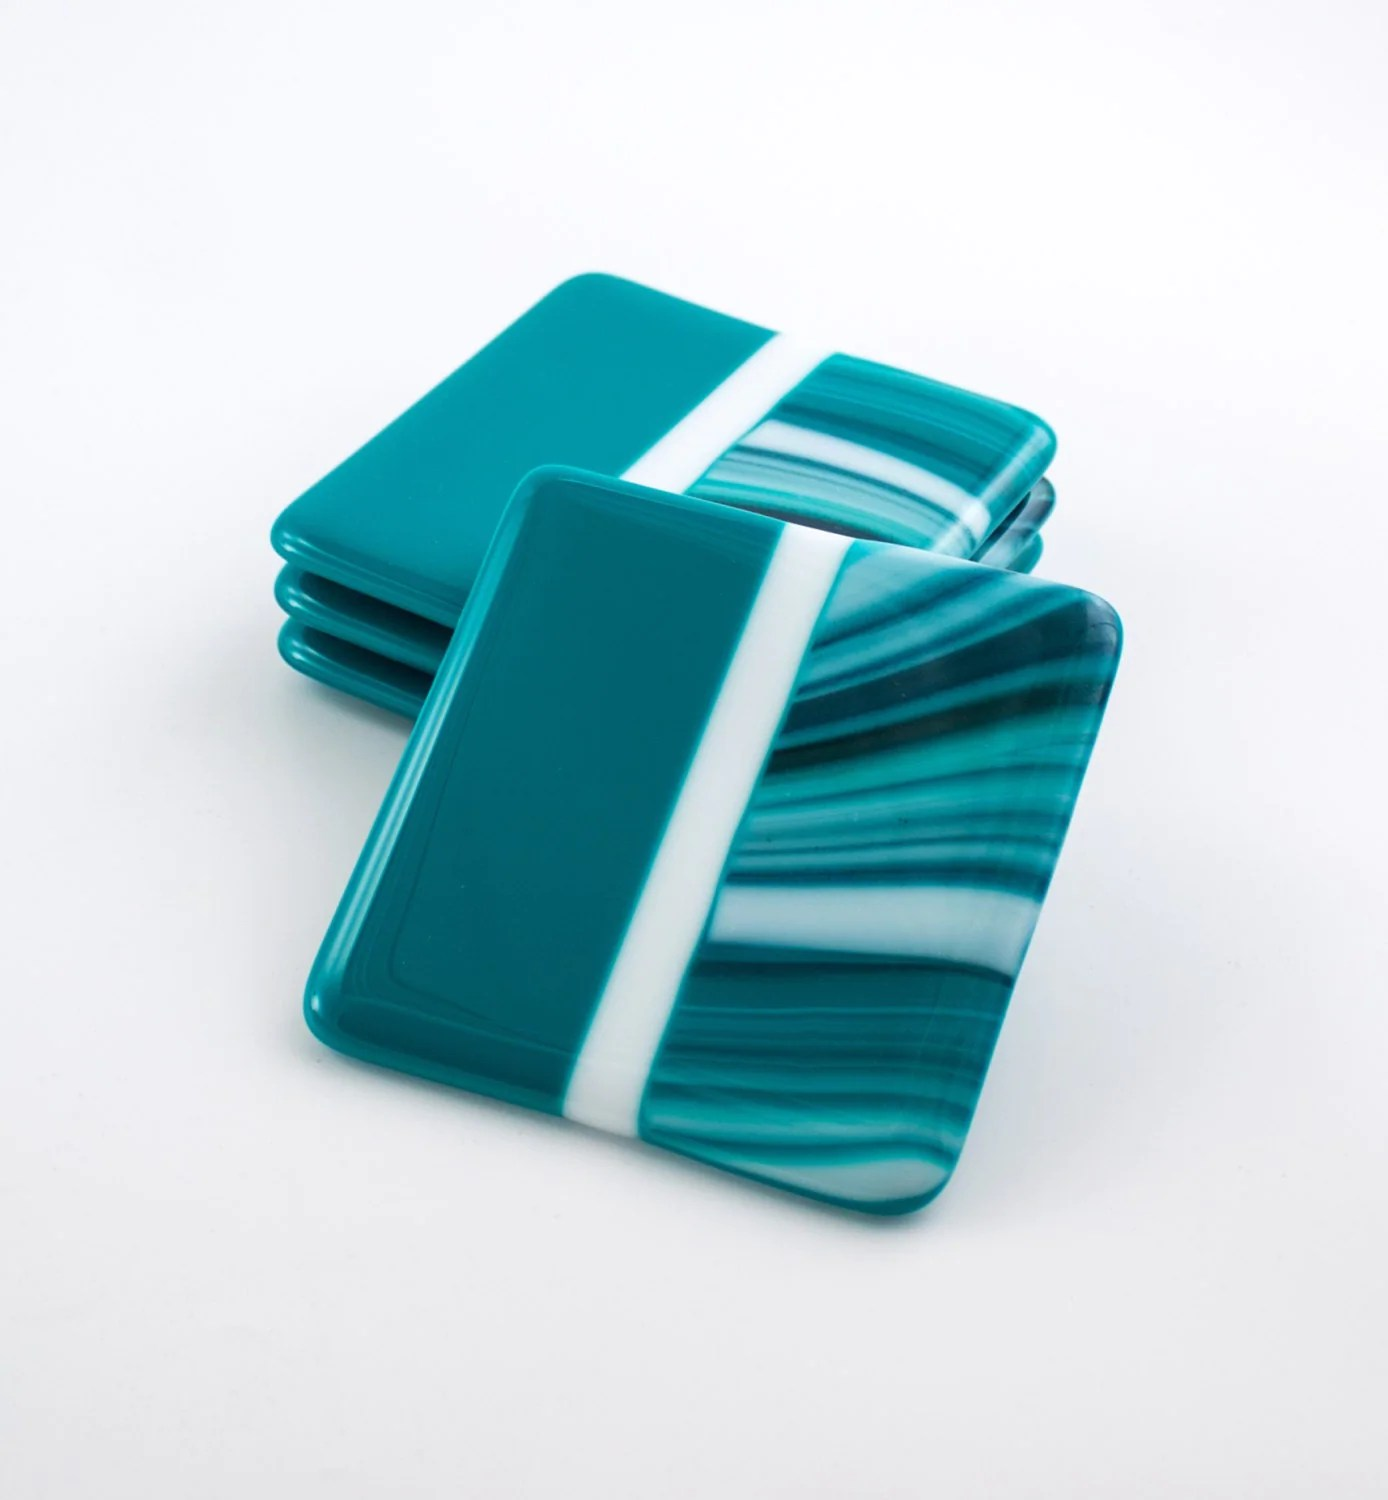 Cool Bar Coasters Fused Glass Coasters Set Of 4 Teal Home Decor By